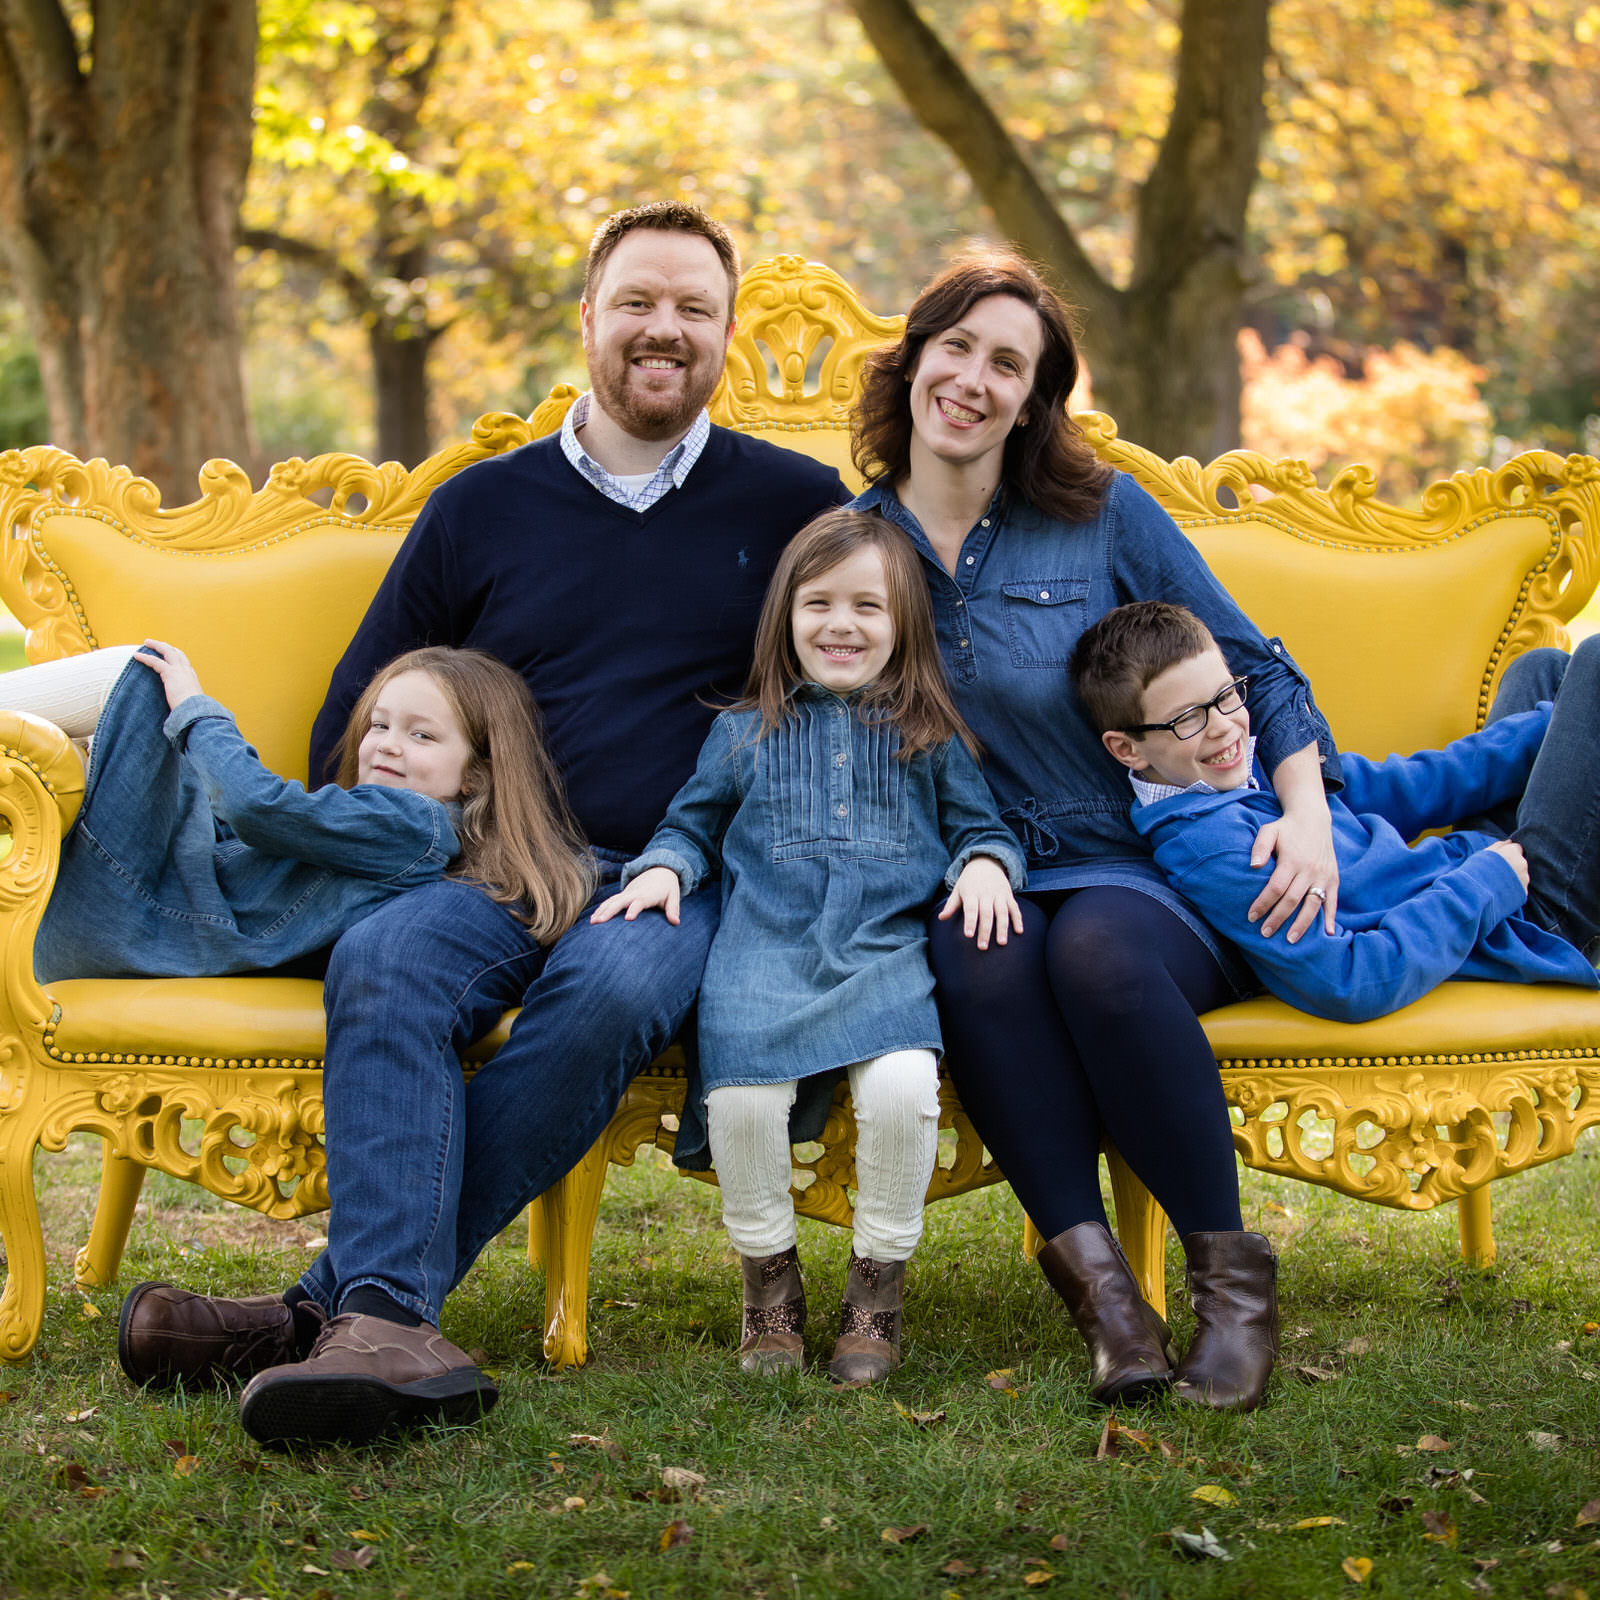 Downers_Grove_awesome_natural_lifestyle_children_and_family_portrait_photography_by_Summer_Brader_0035